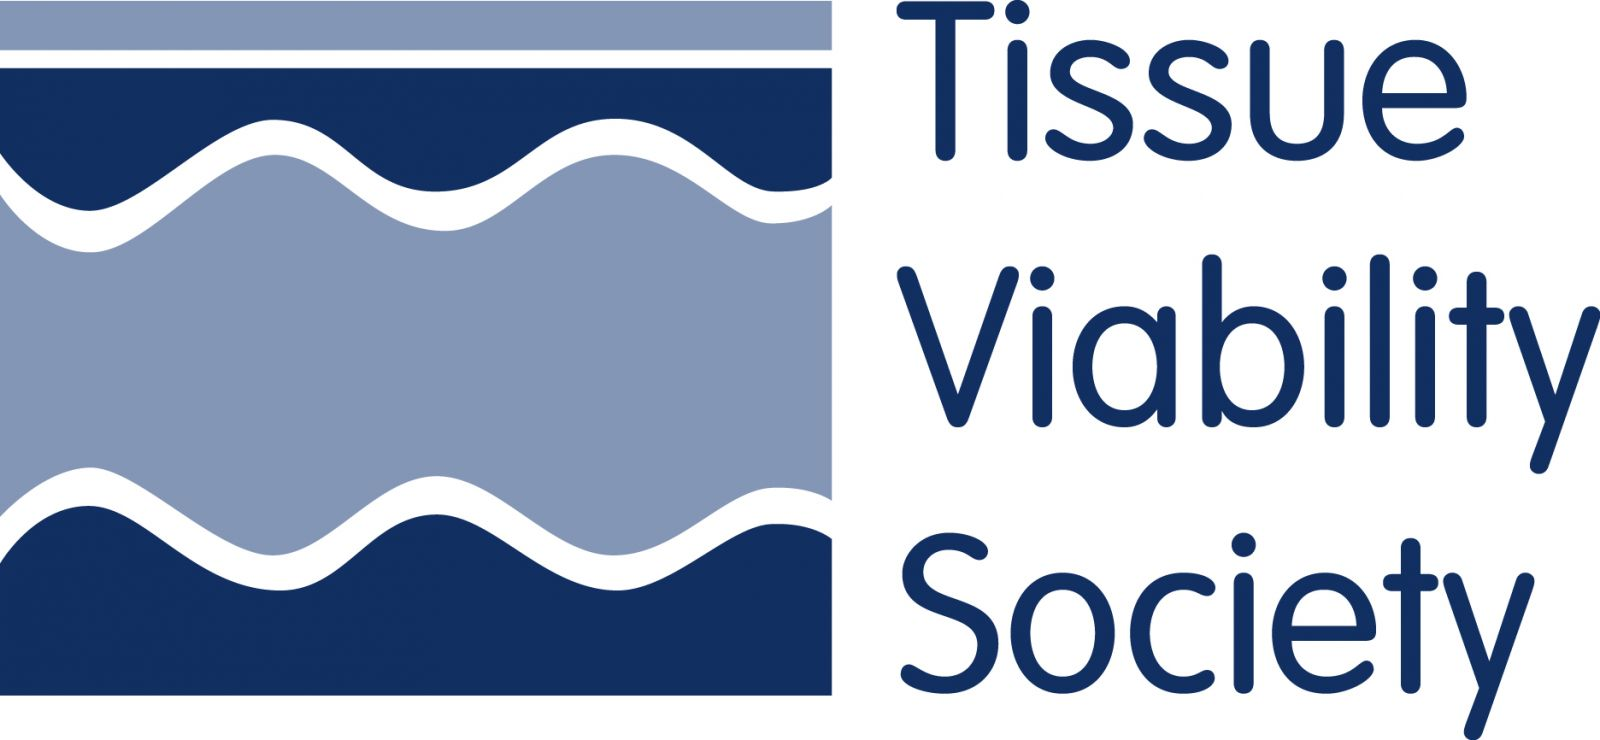 Perfectus Biomed to attend the Tissue Viability Society conference in May